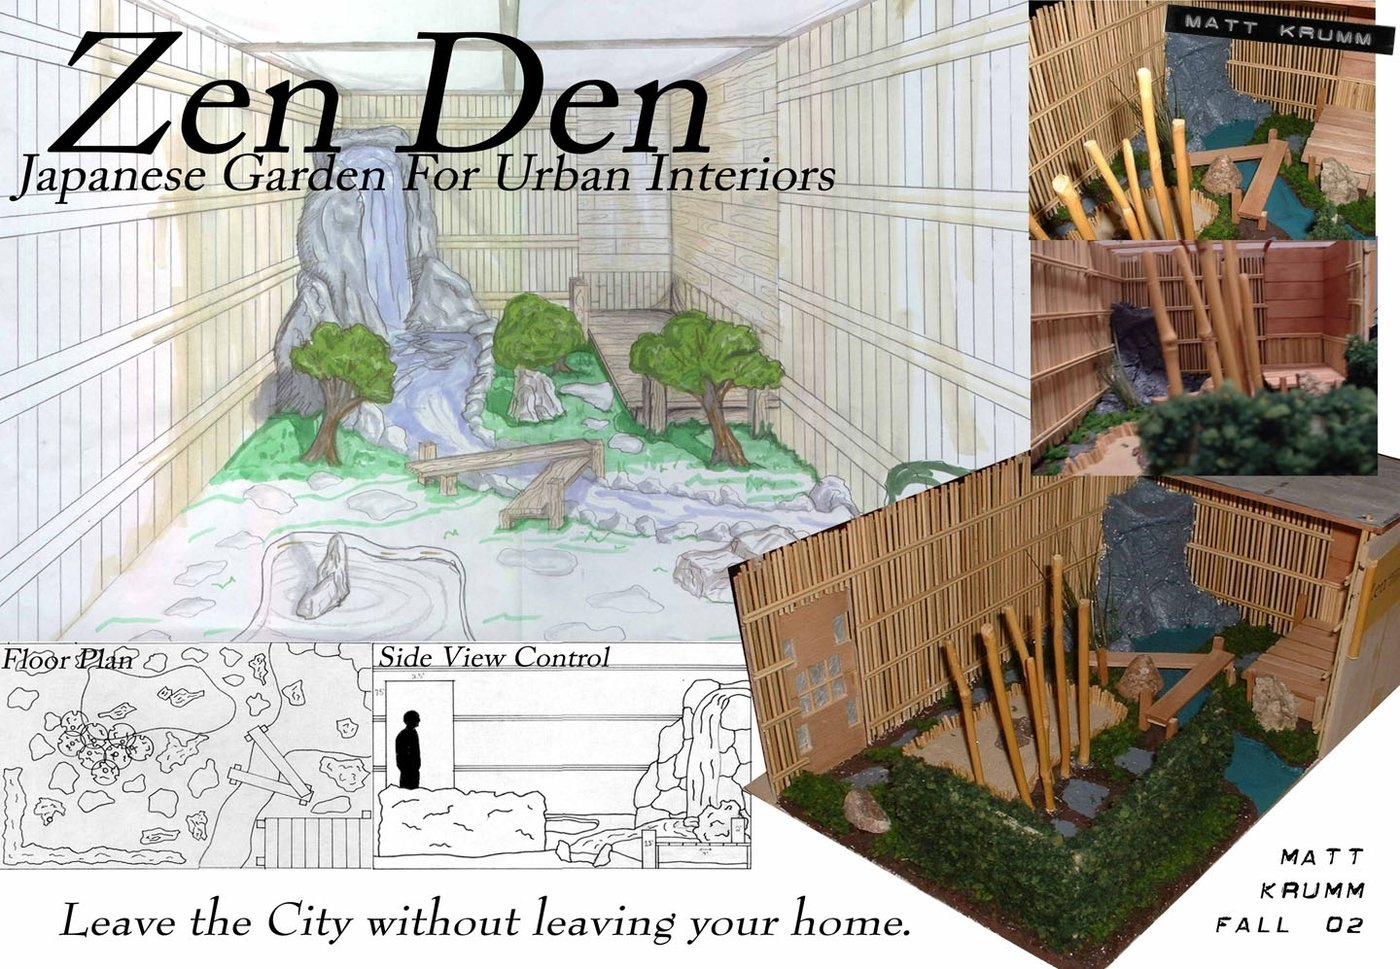 Undergrad art and design by matt krumm at for Interior zen garden